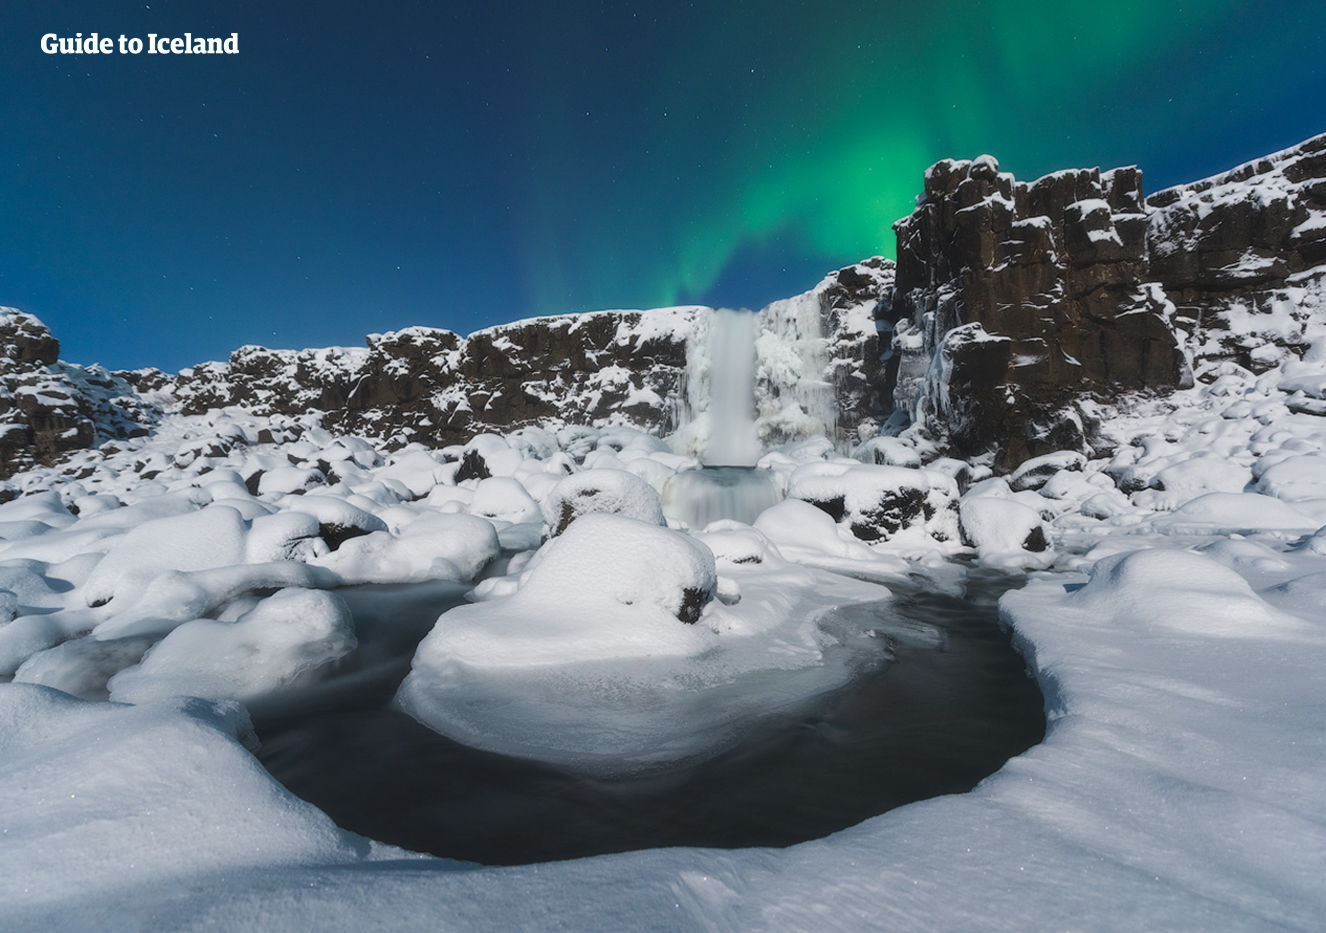 Snow-covered ground and Northern Lights at Þingvellir National Park.